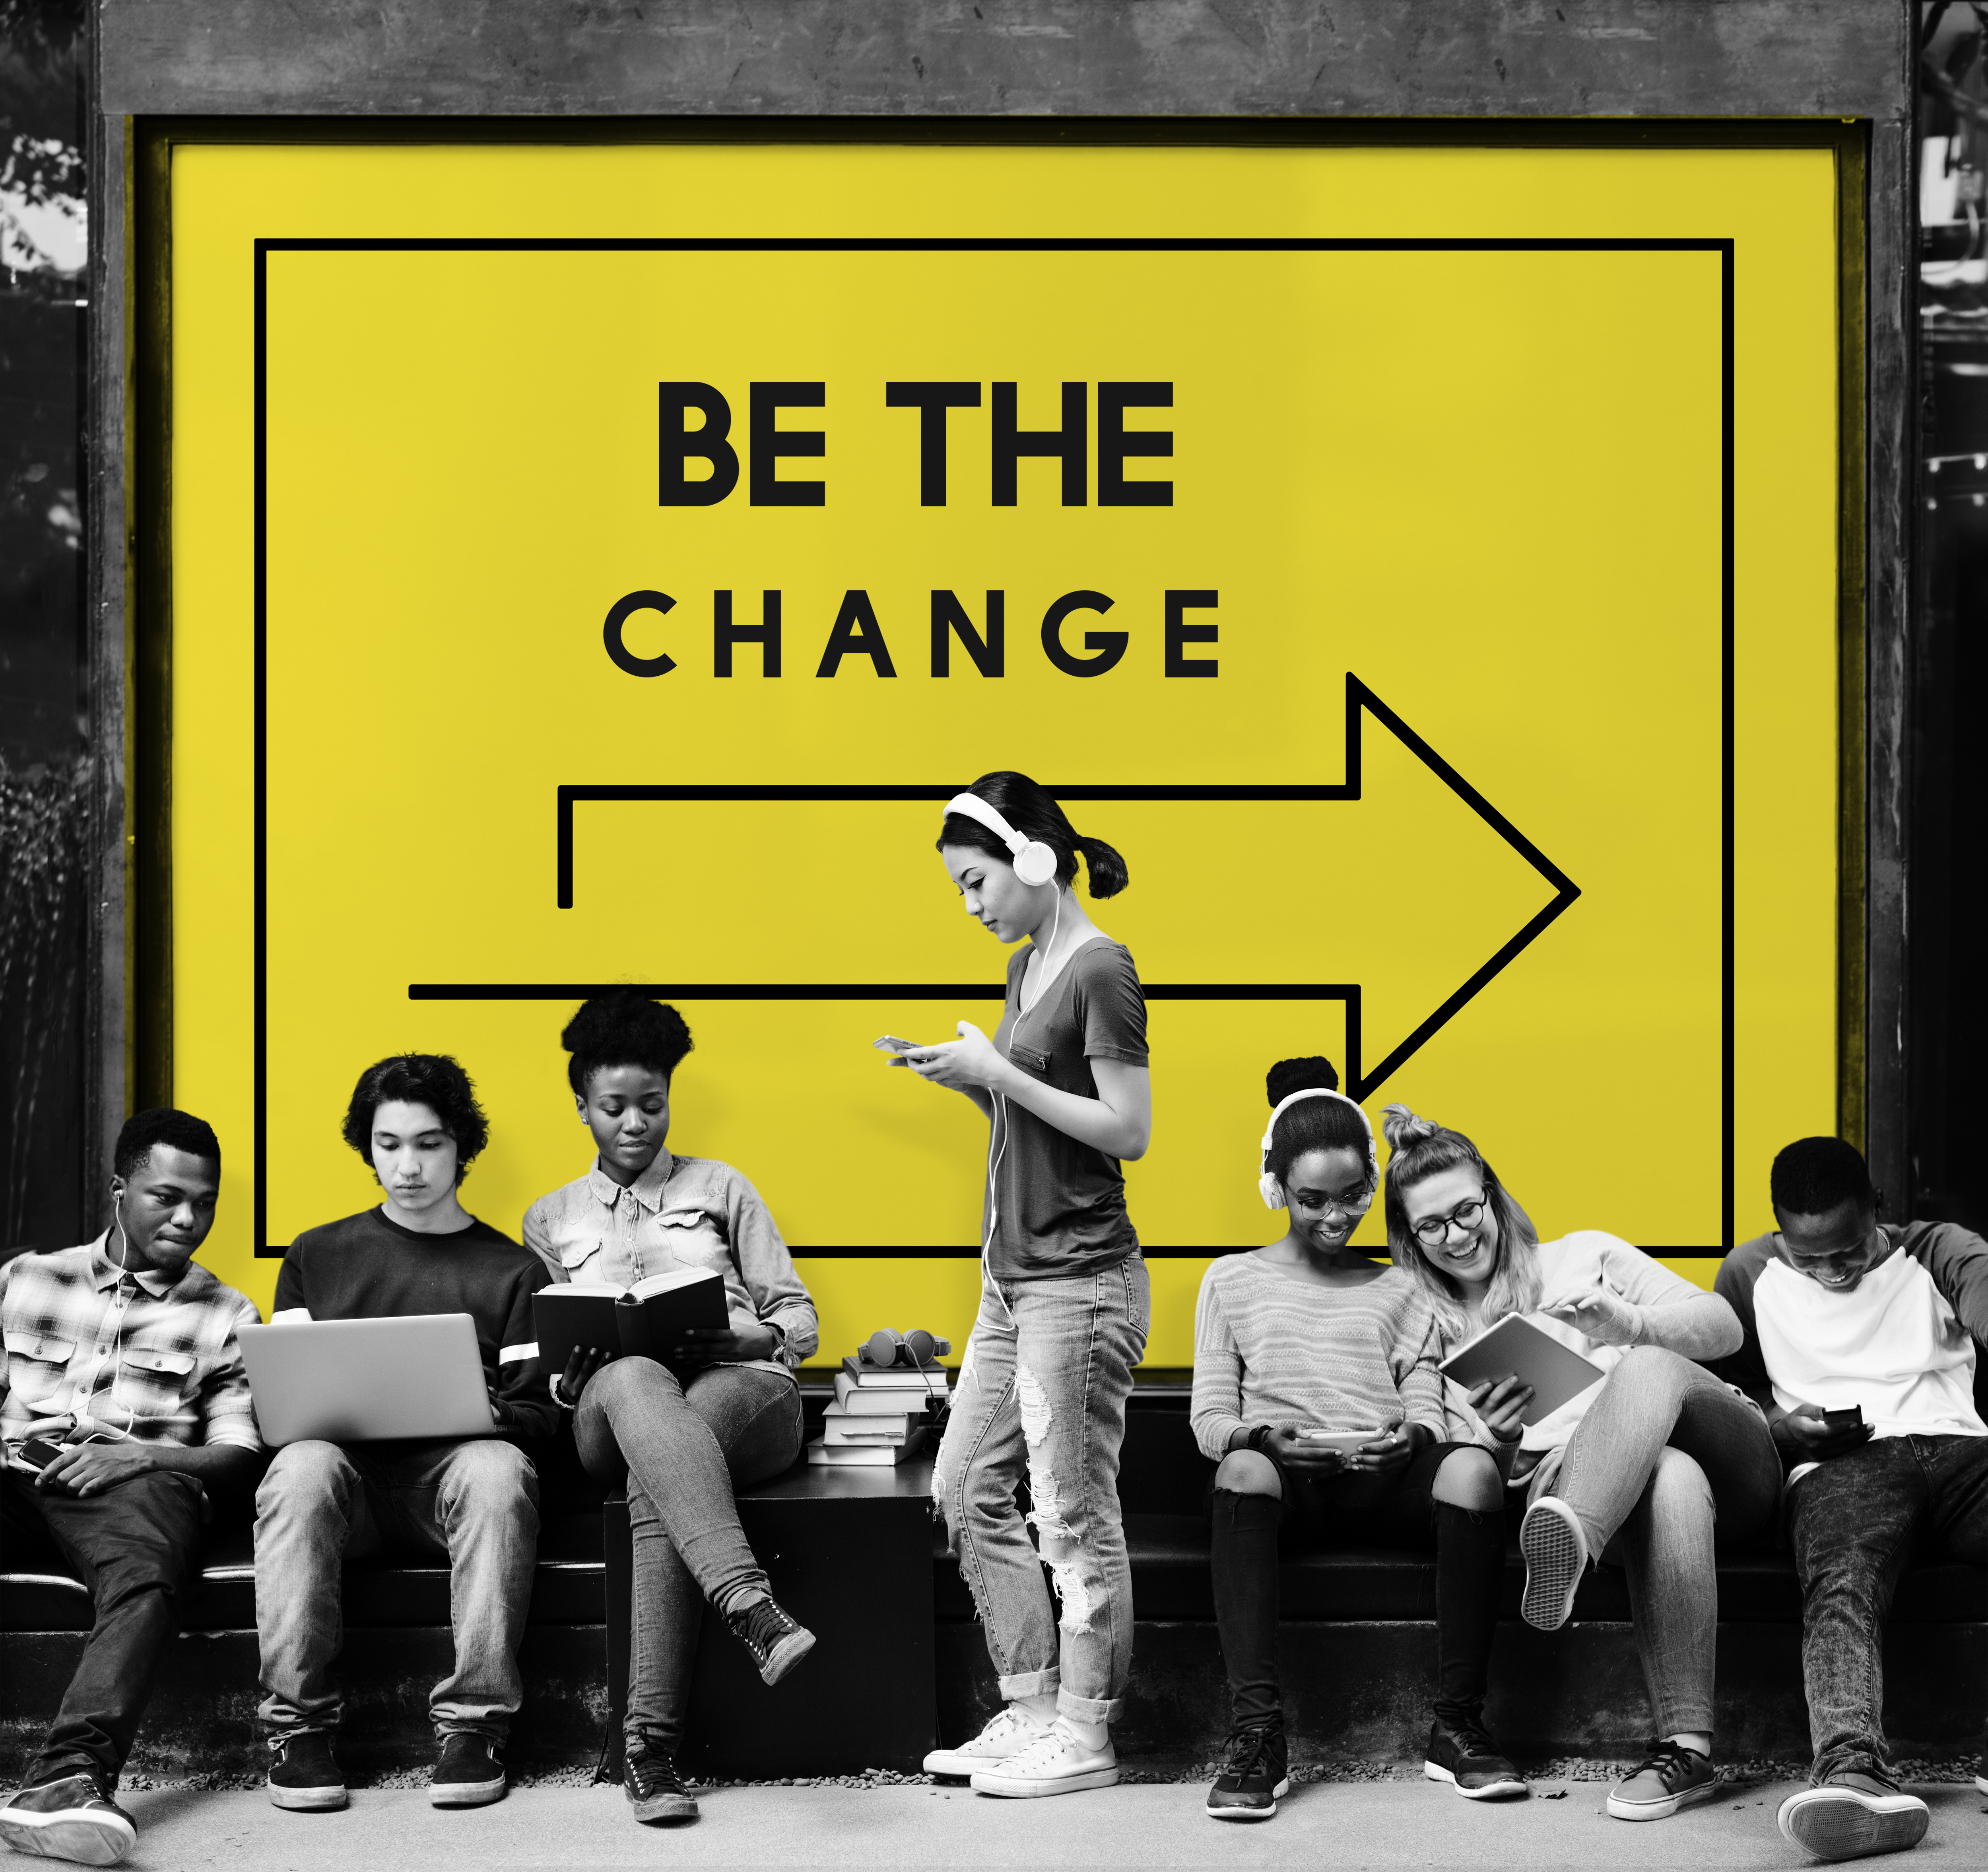 Above: POC is facilitating real change.